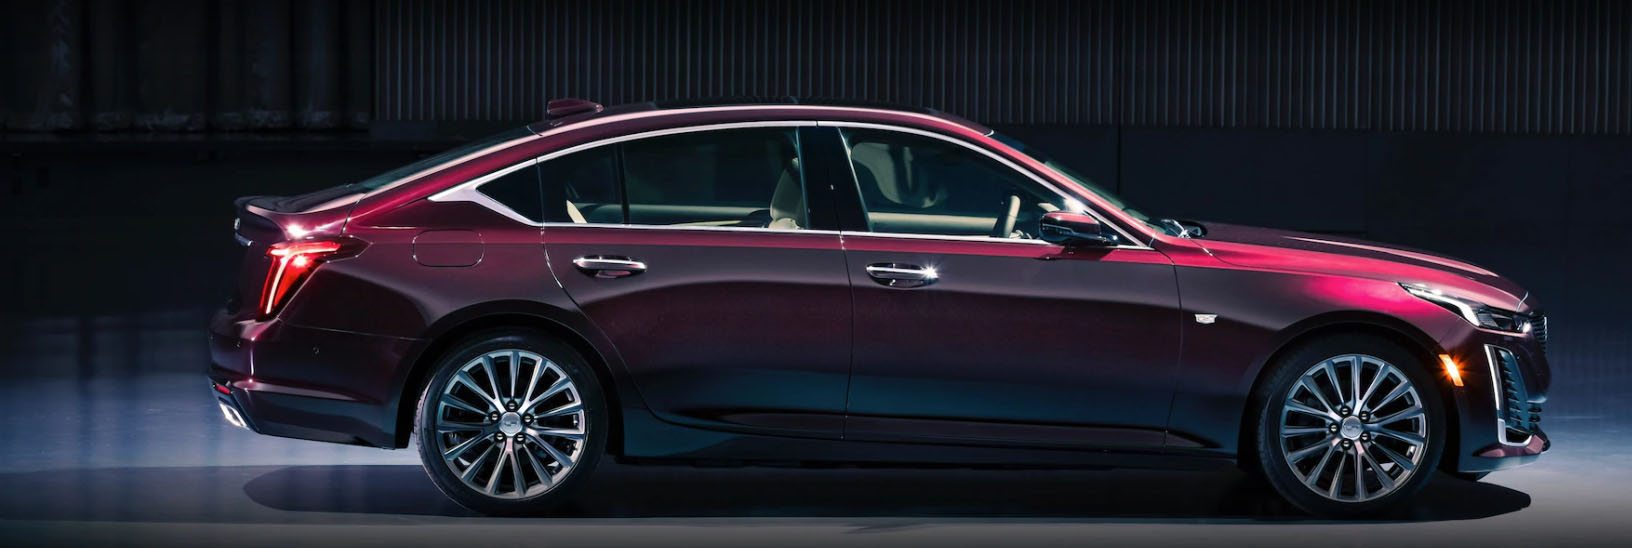 2020 Cadillac CT5 Main Img